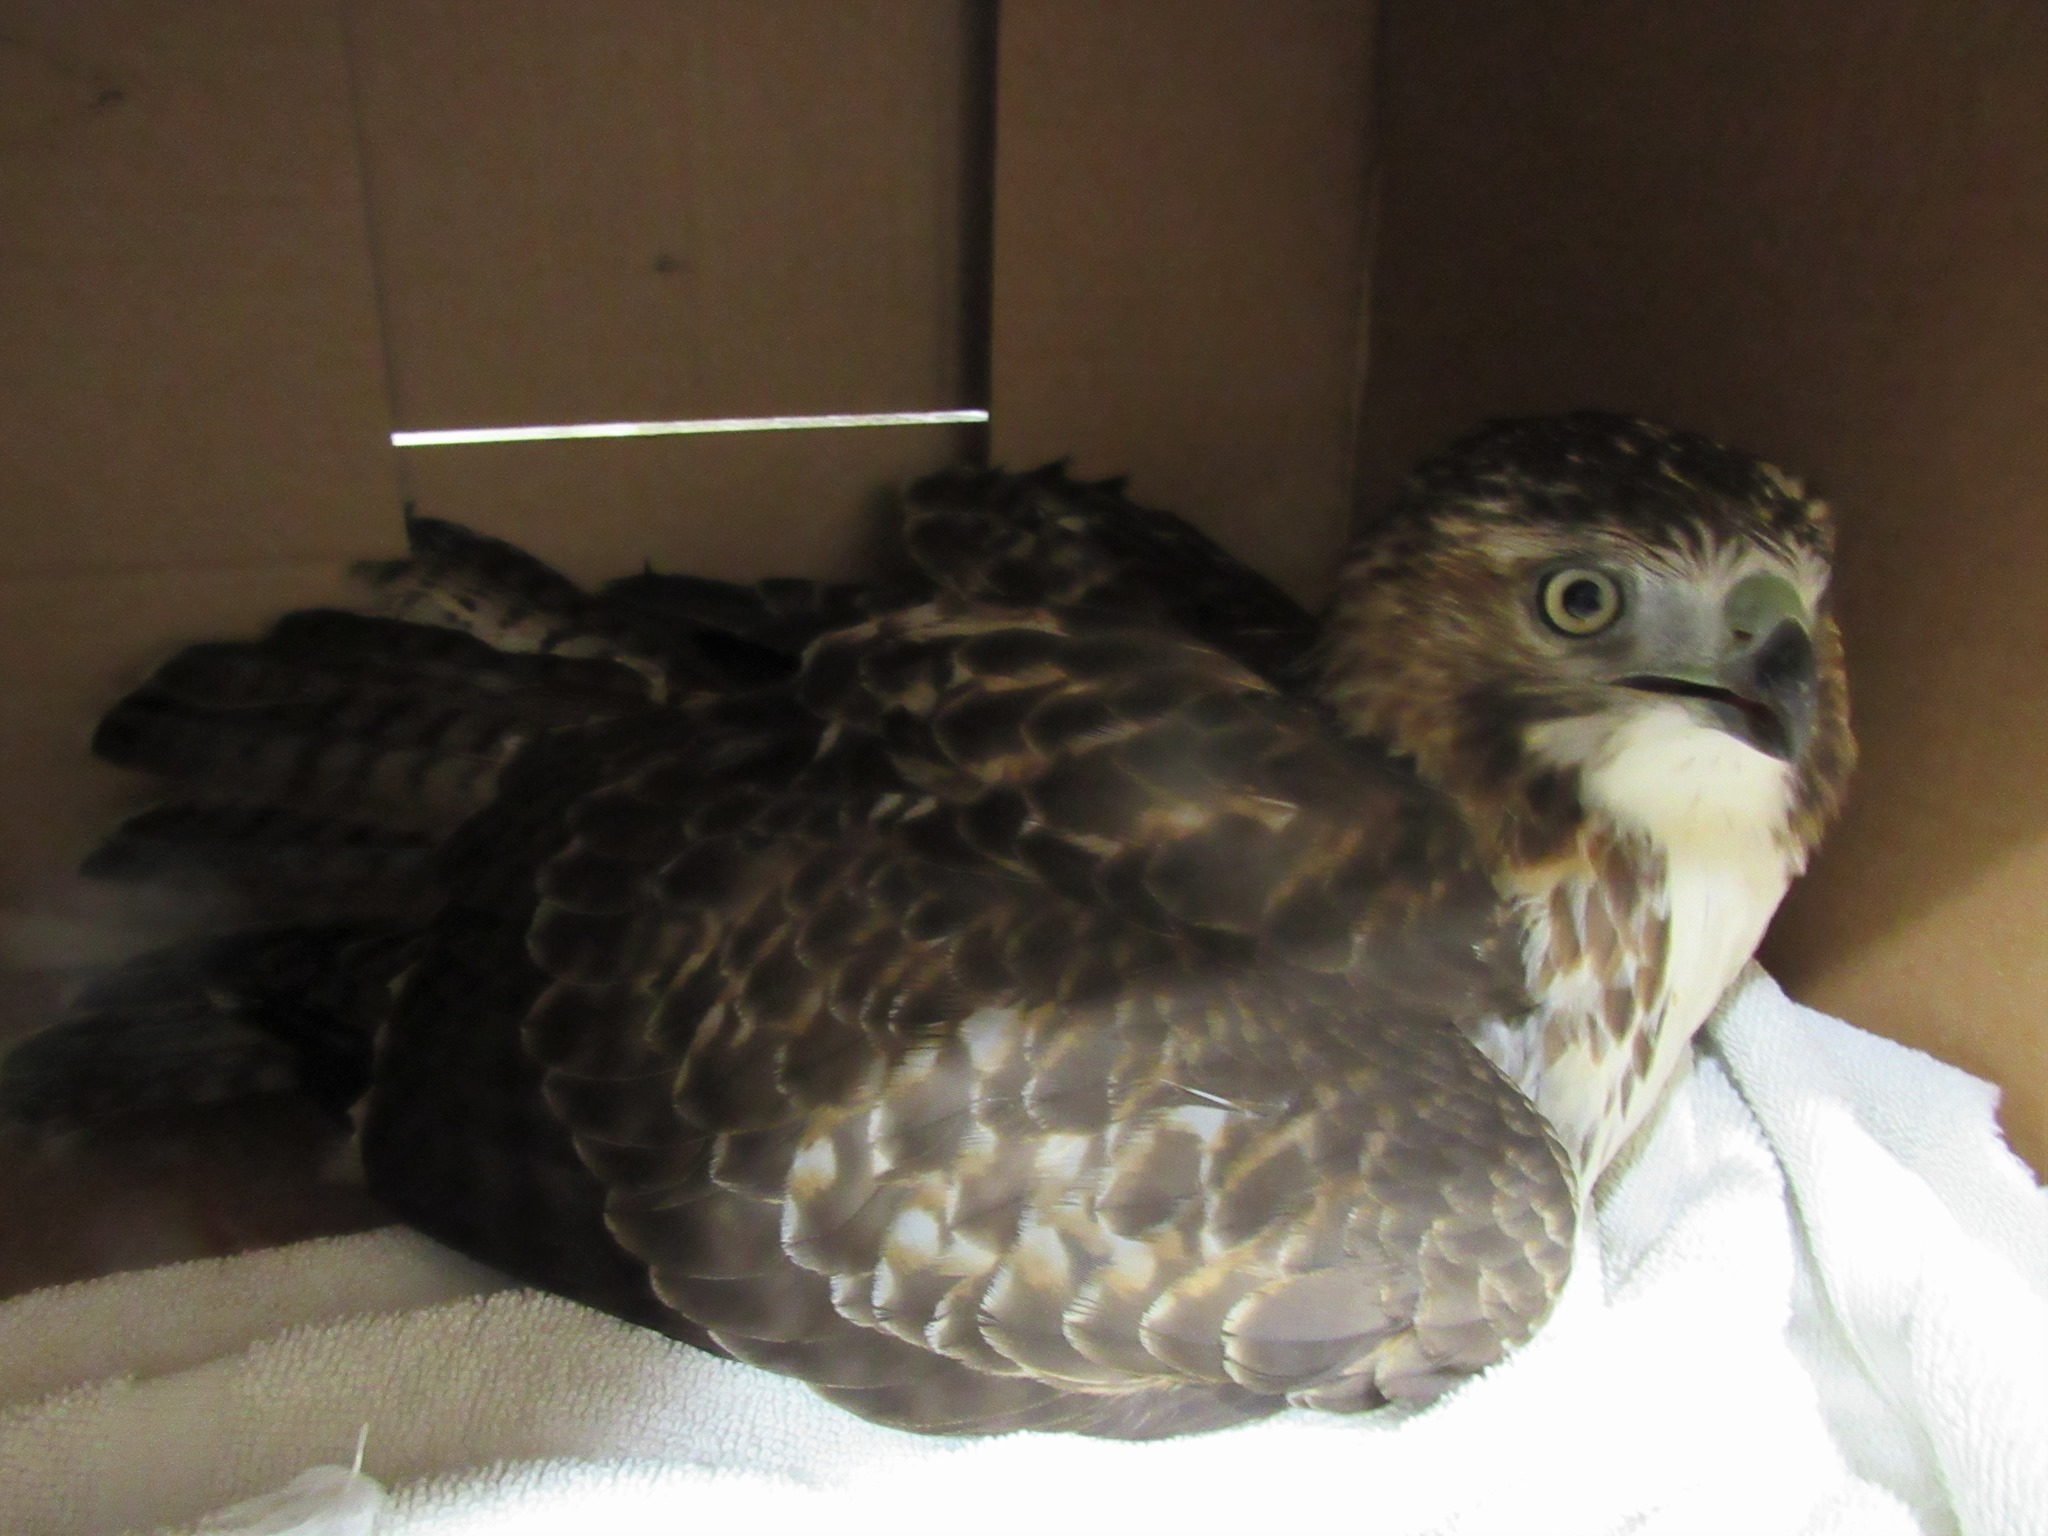 A very handsome adult male Red tailed hawk was hit by a vehicle and rescued by the person that saw the incident and stopped to hep.